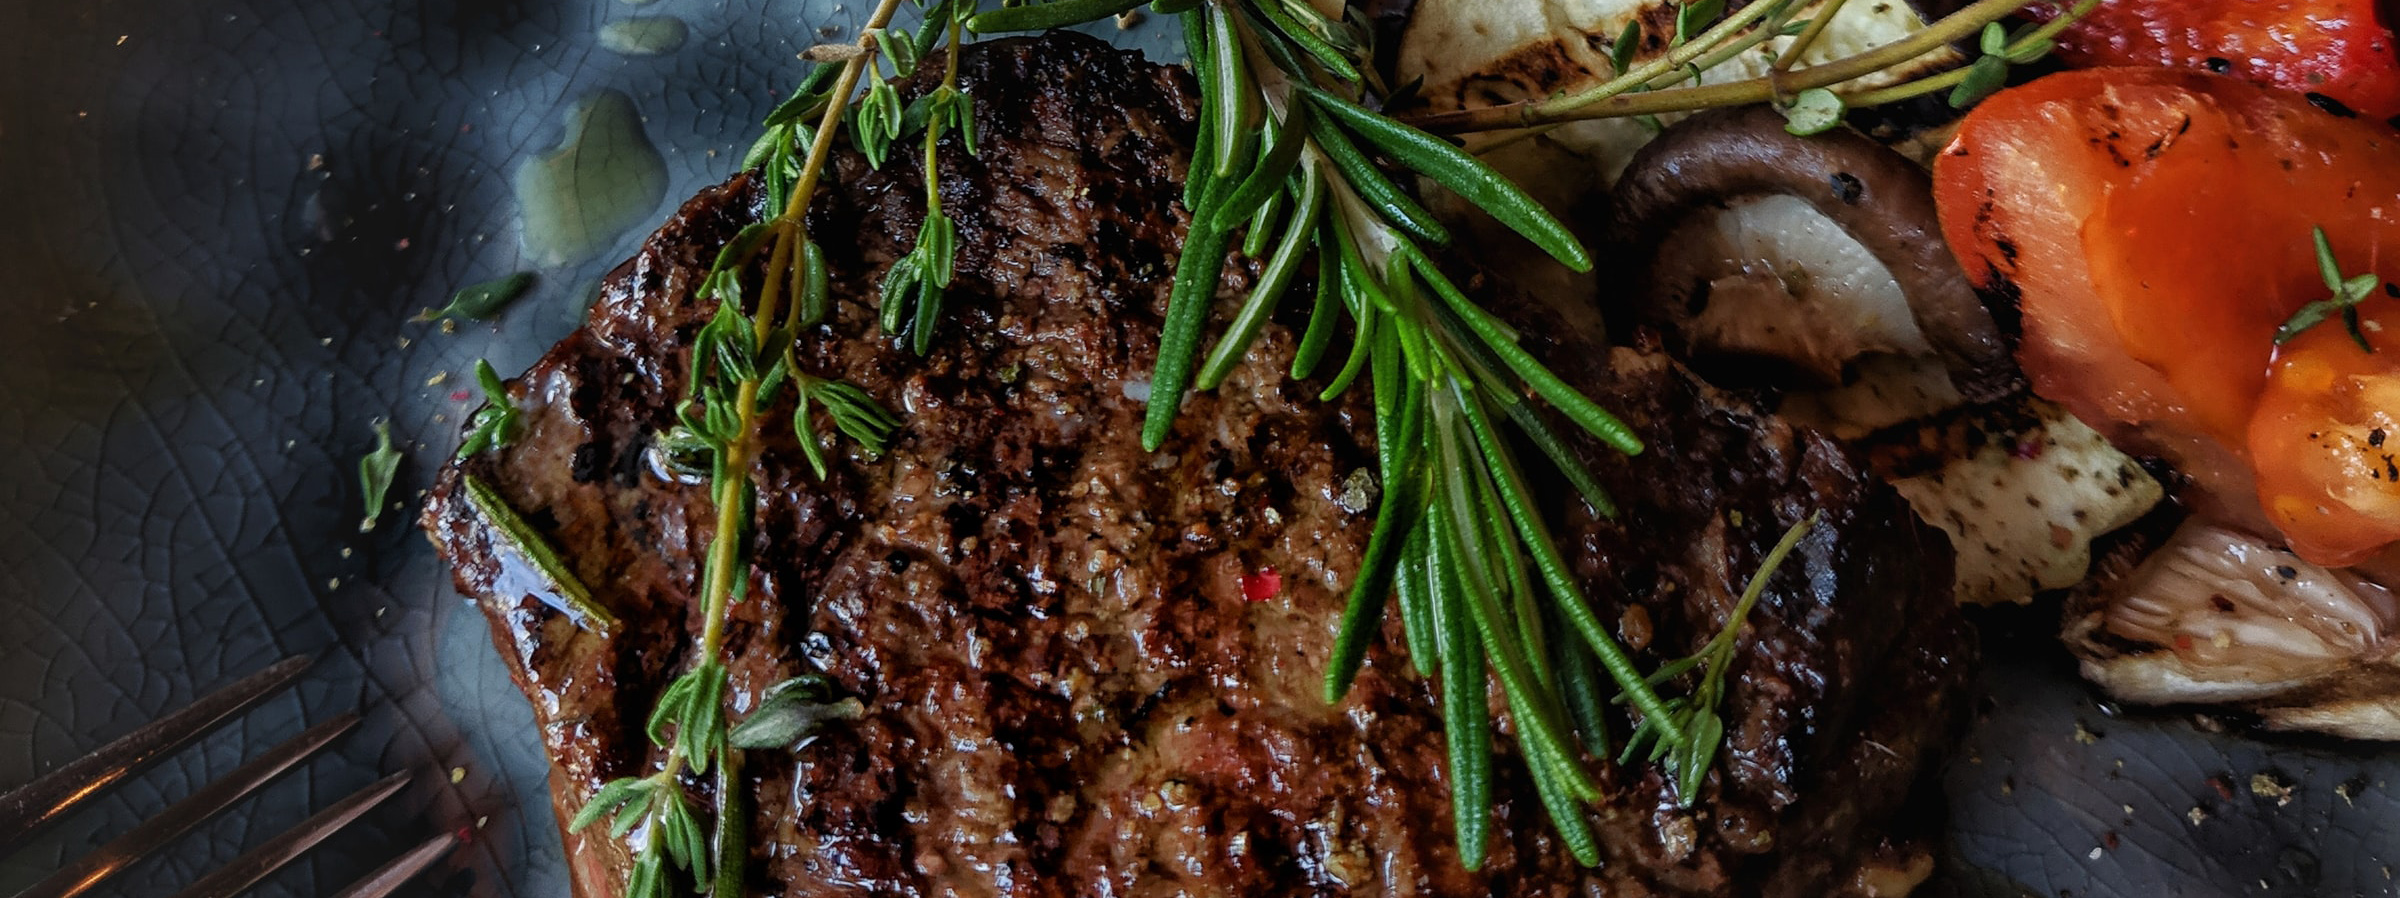 Steak with rosemary and sauteed vegetables.